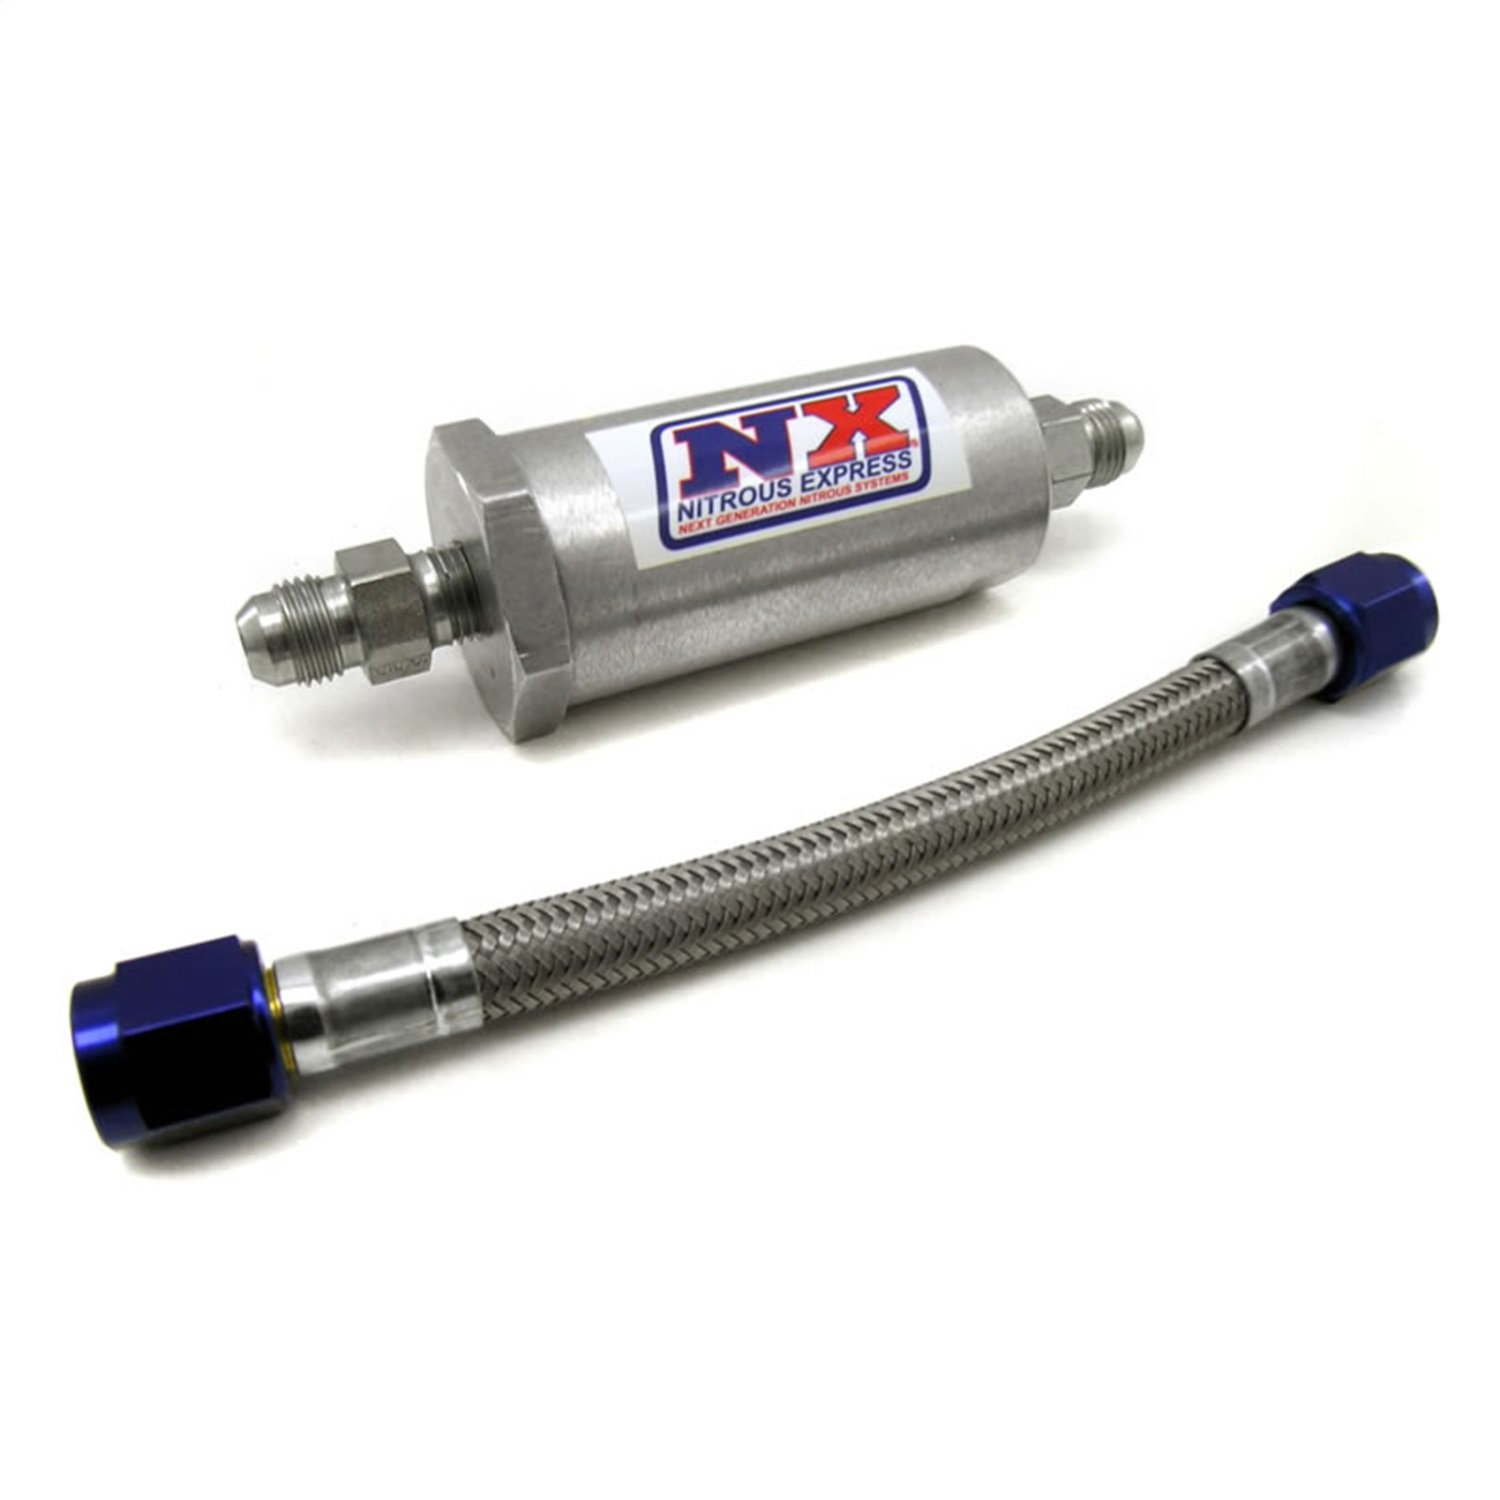 Nitrous Express 15607 D-4 Pure-Flo N2O Filter and 7'' Stainless Hose by Nitrous Express